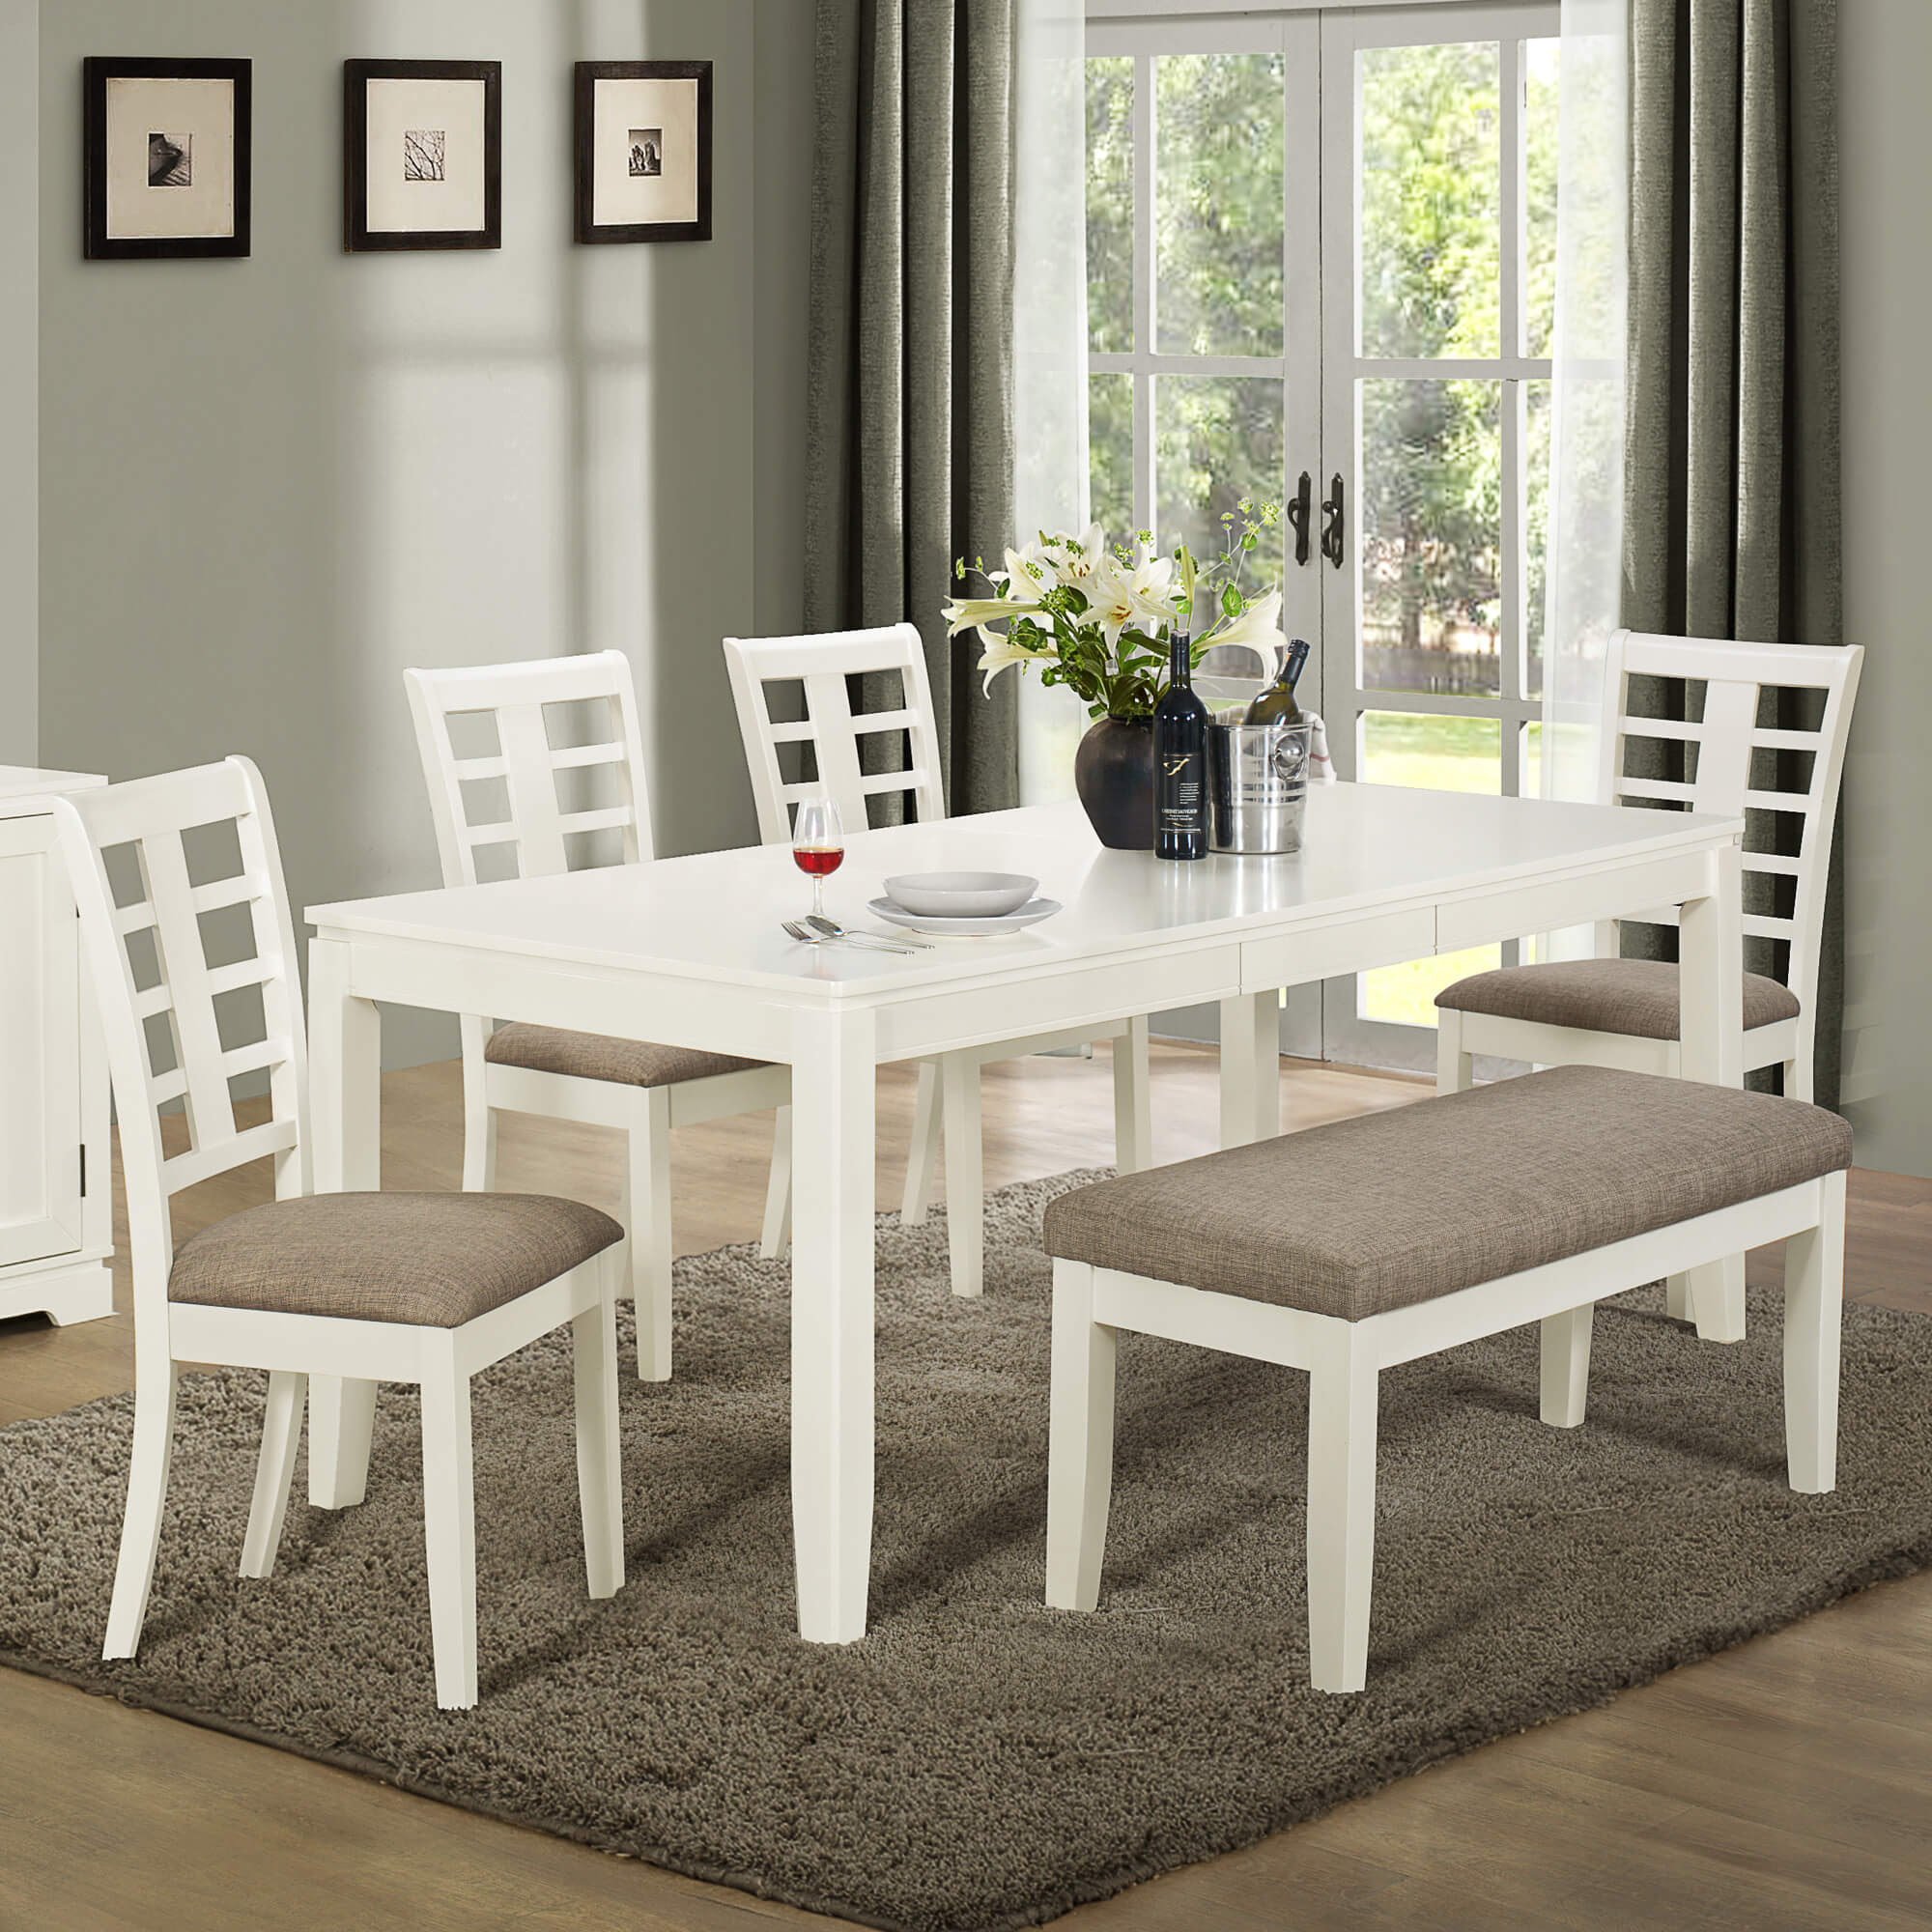 26 Big \u0026 Small Dining Room Sets with Bench Seating